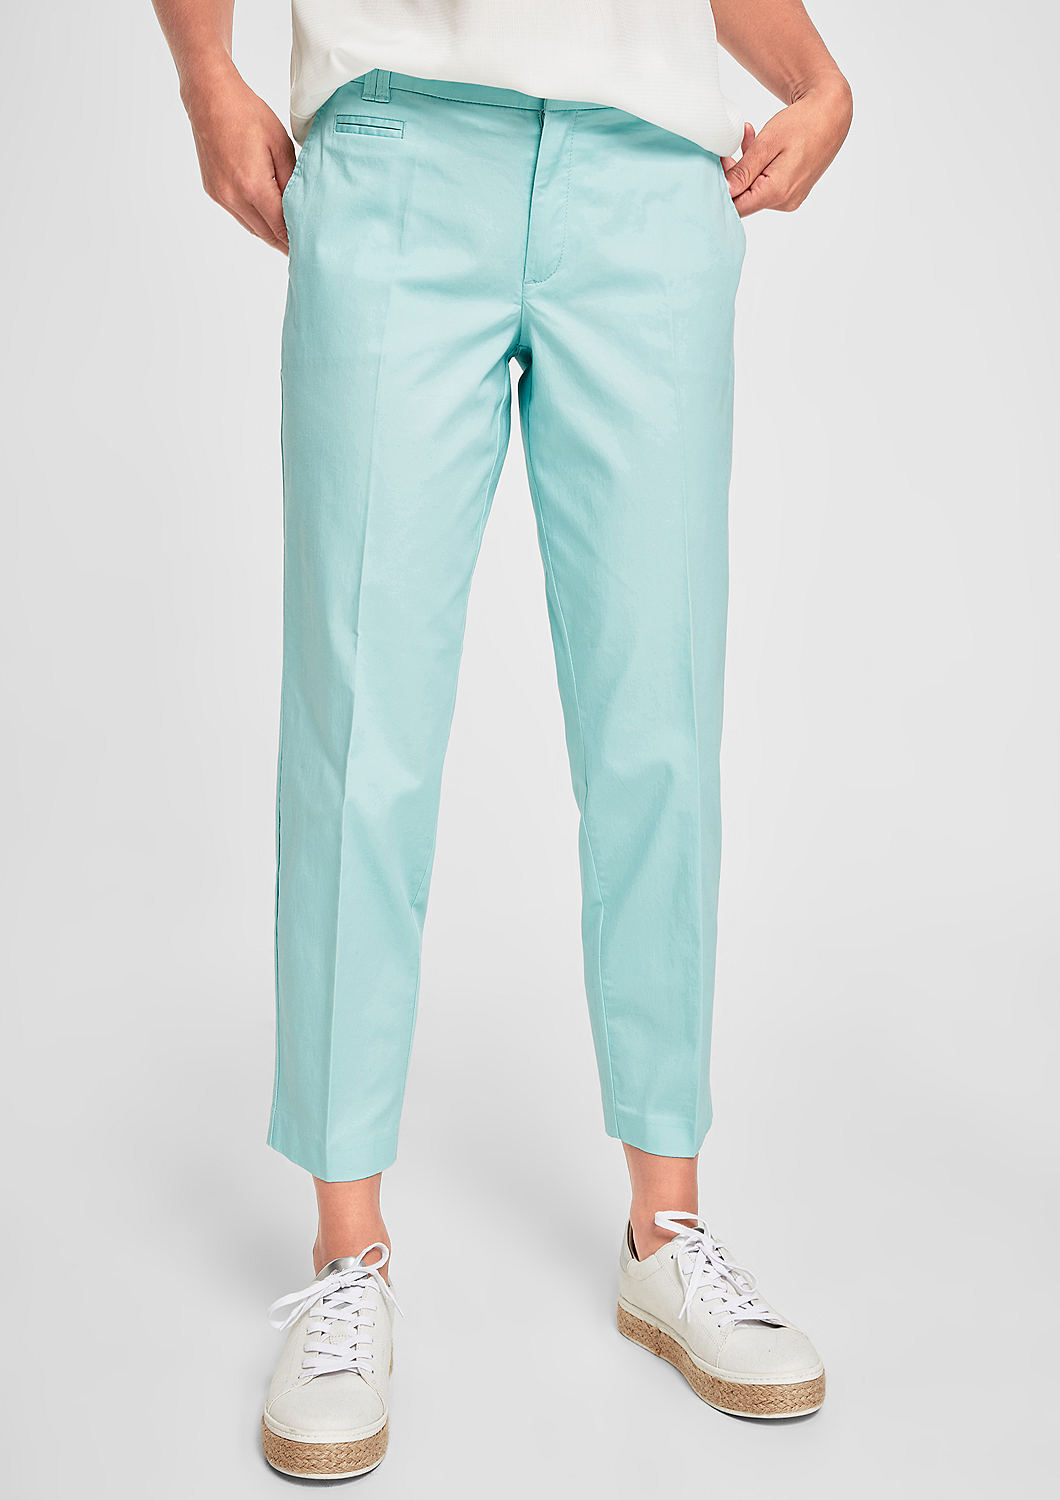 s.Oliver - Shape Ankle: Leichte Chino - 1